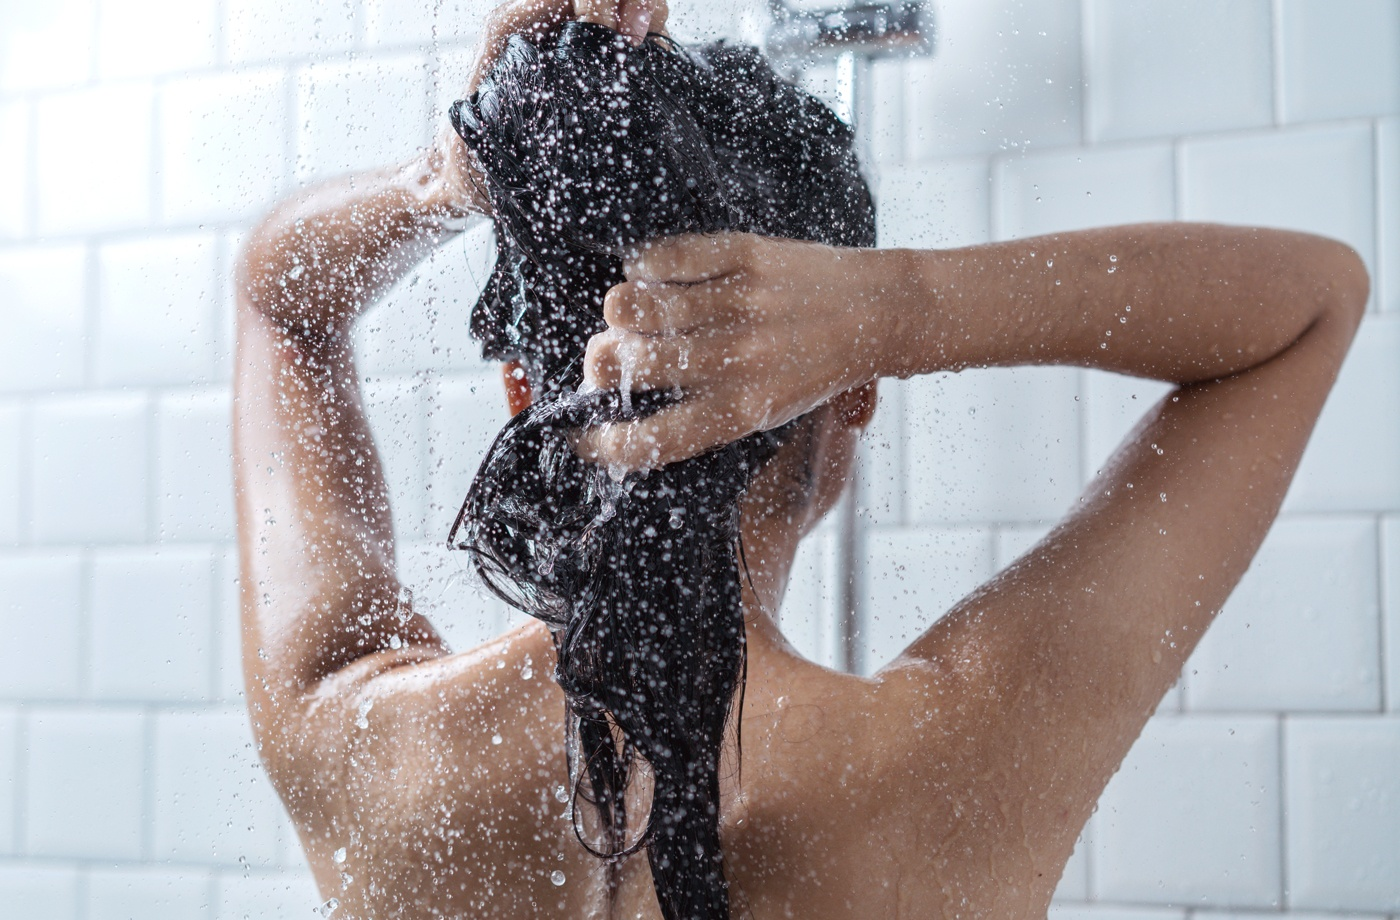 Thumbnail for This simple test could tell you if you're washing your hair too often